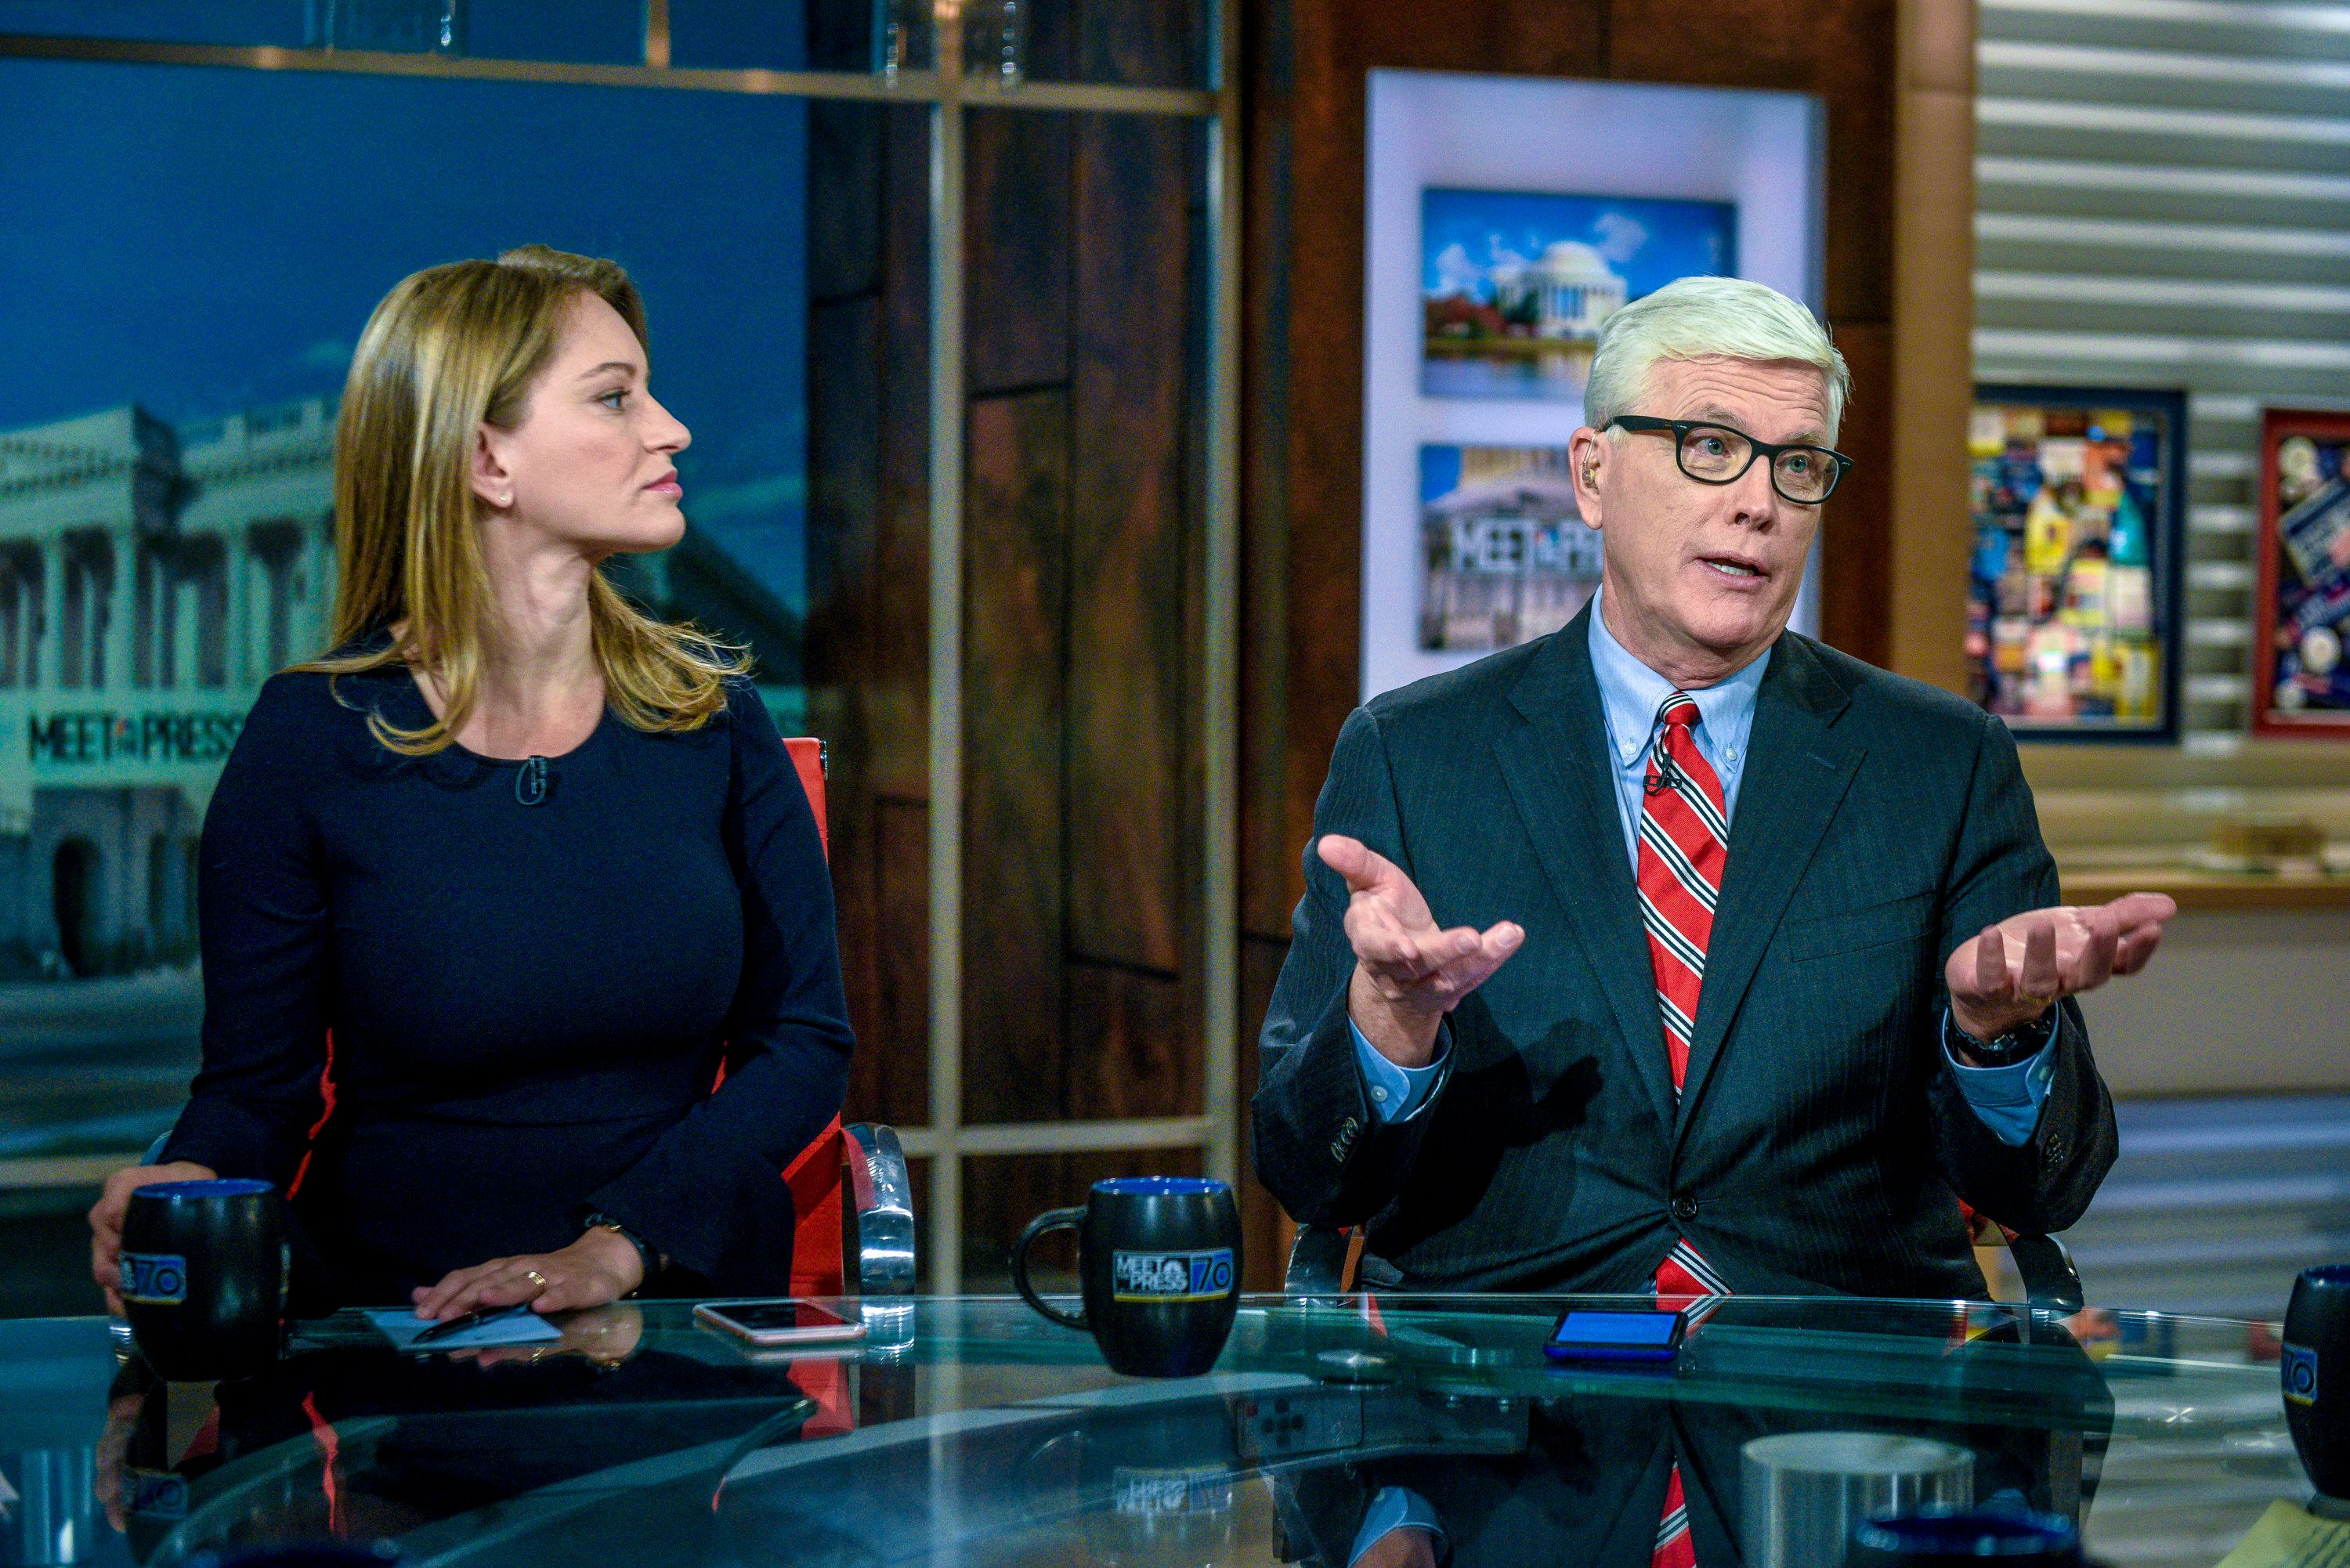 MEET THE PRESS -- Pictured: (l-r)   Katy Tur, NBC News Correspondent; Host, 'MSNBC Live' and Hugh Hewitt, Host, MSNBCs Hugh Hewitt appear on 'Meet the Press' in Washington, D.C., Sunday, Nov. 26, 2017.  (Photo by: William B. Plowman/NBC/NBC NewsWire via Getty Images)